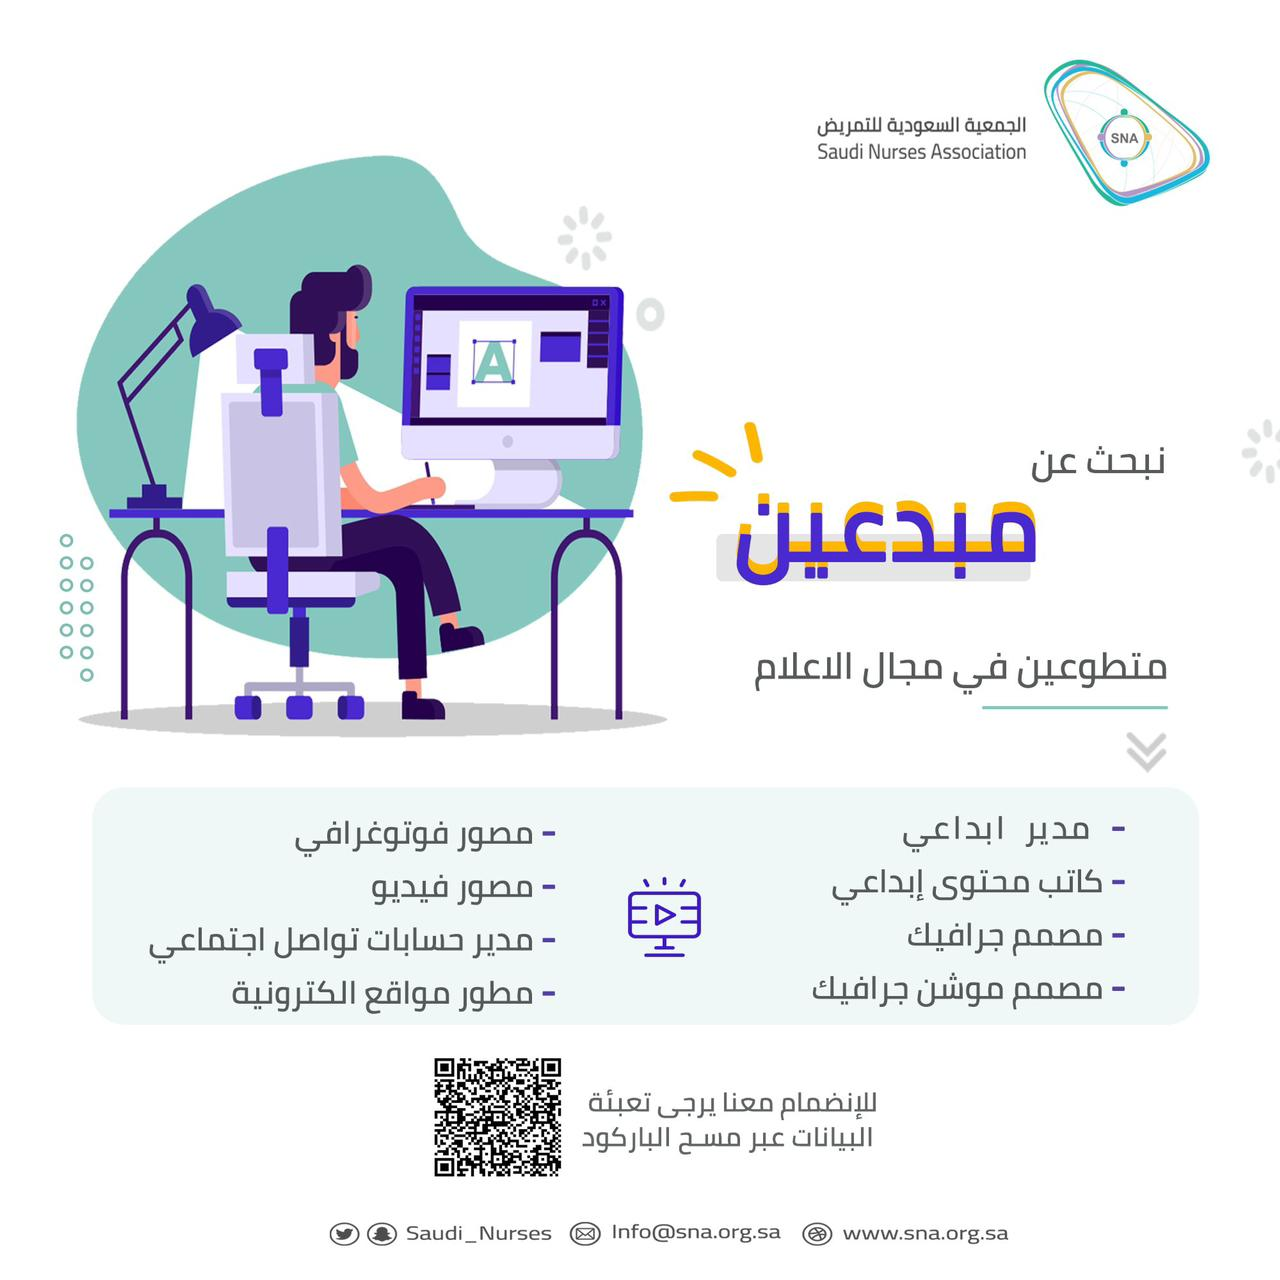 We are looking for talented people